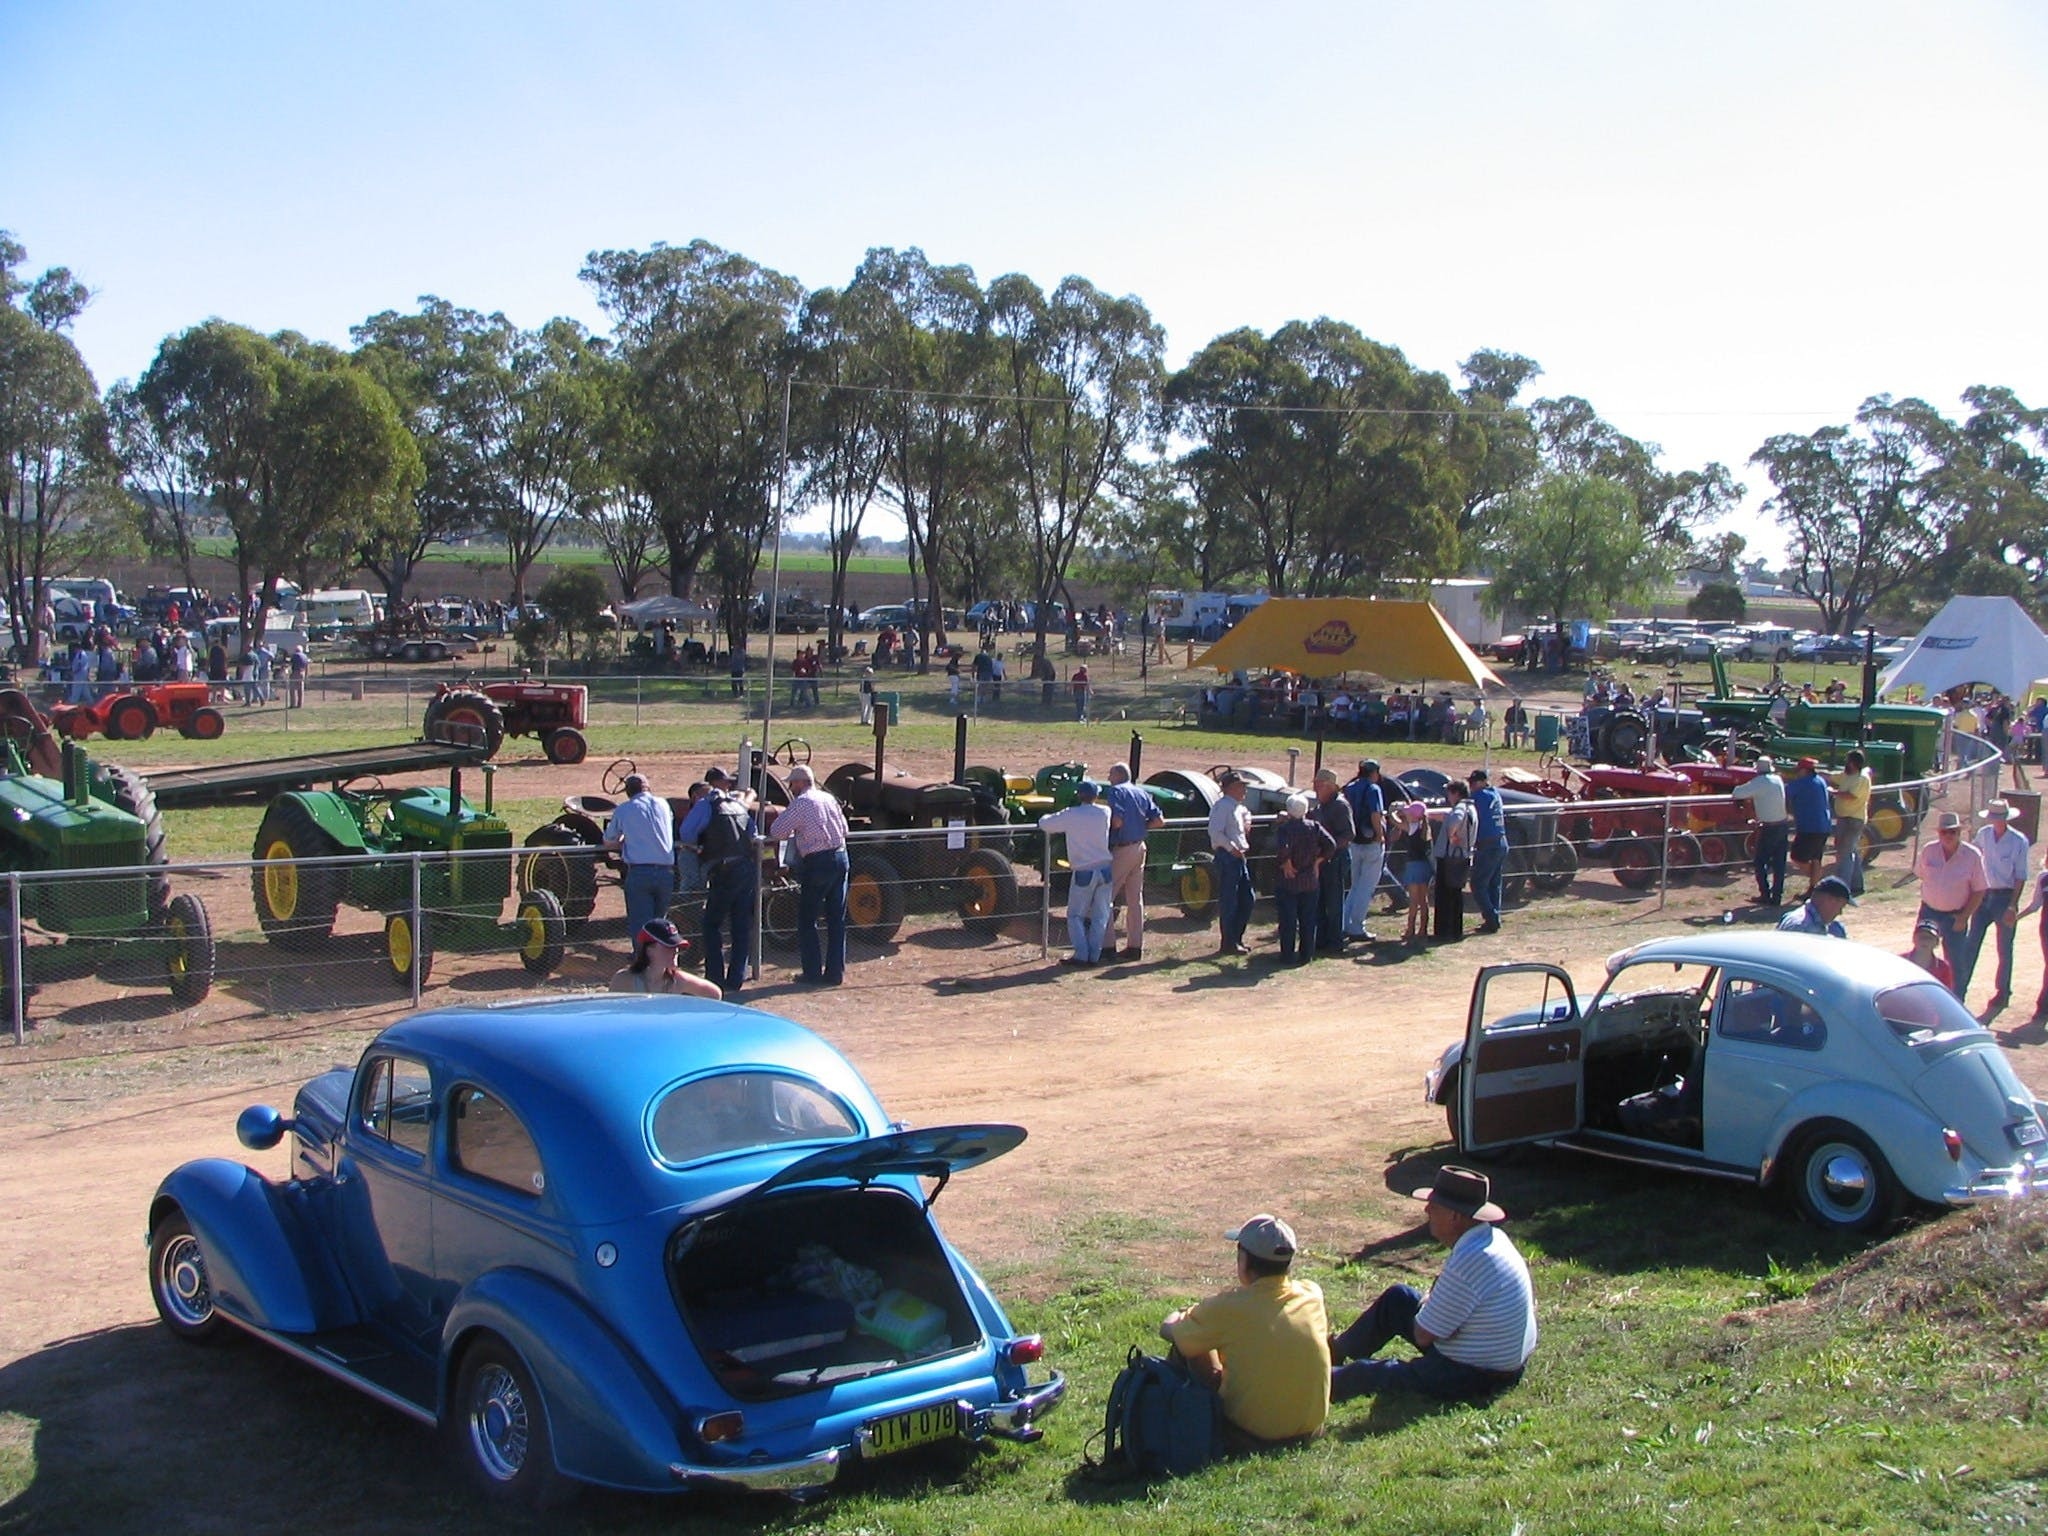 Quirindi Rural Heritage Village - Vintage Machinery and Miniature Railway Rally and Swap Meet - Pubs Melbourne